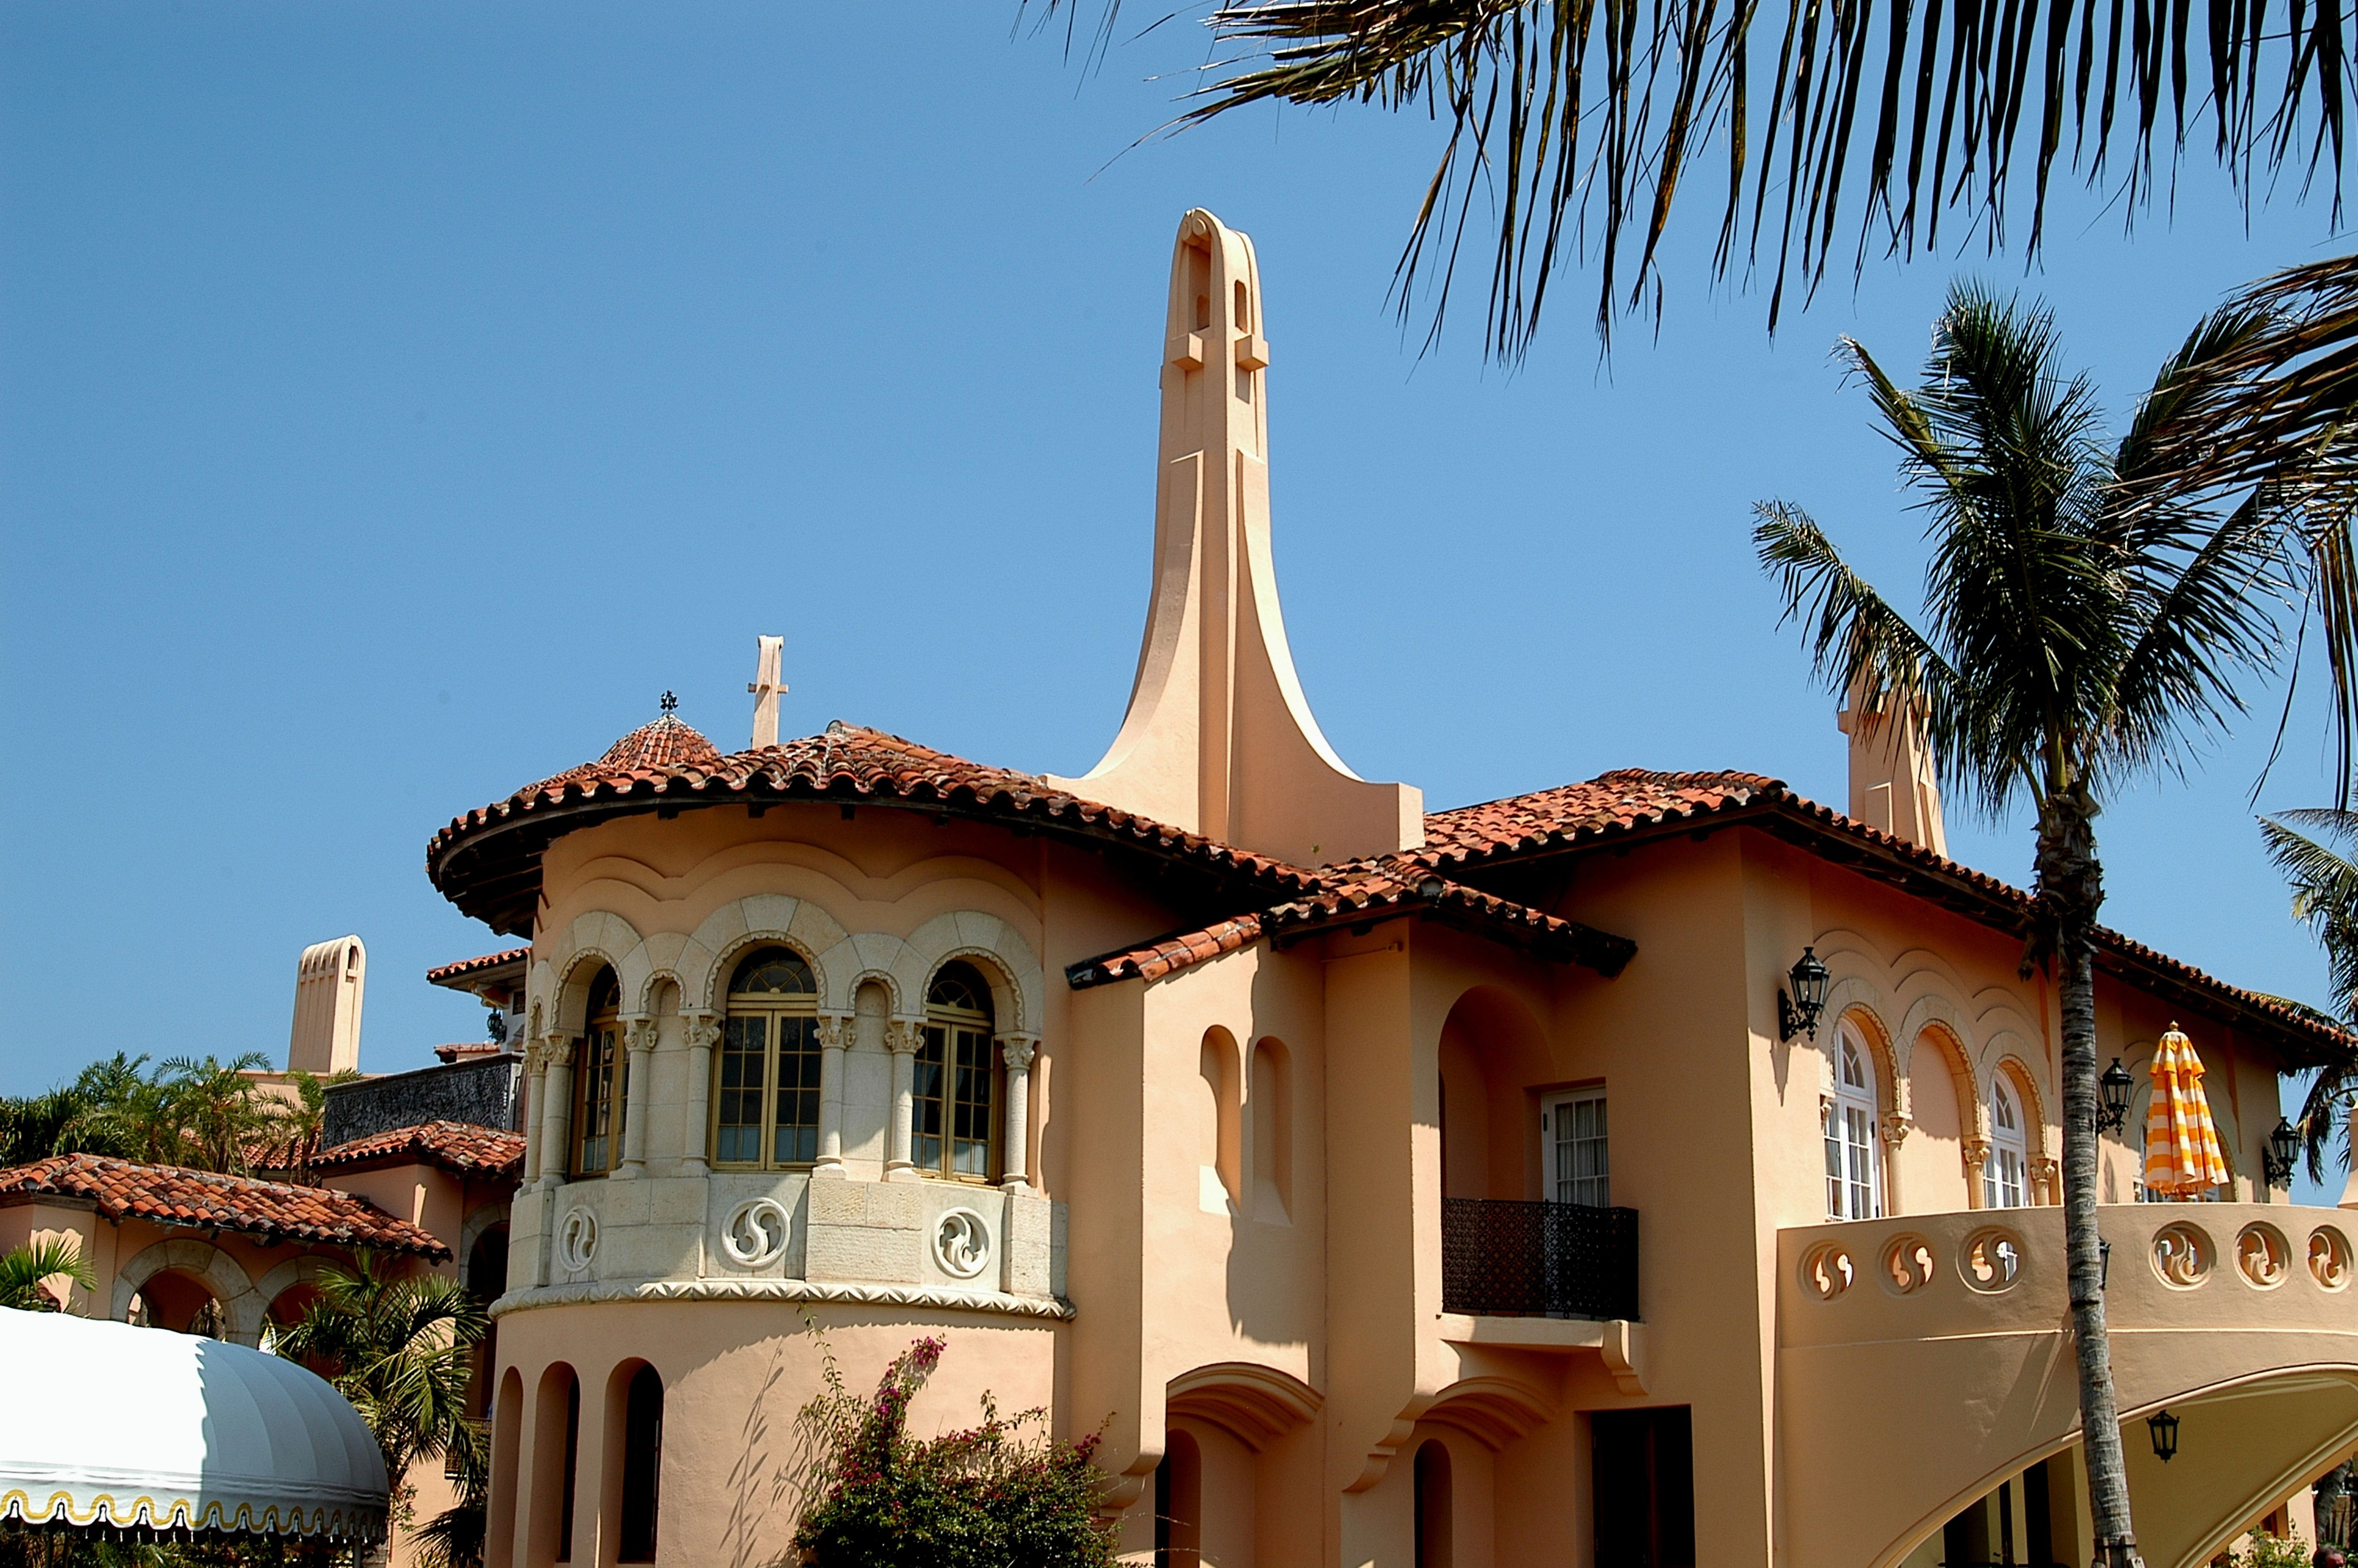 Exterior view of the south side of the Mar-a-Lago estate